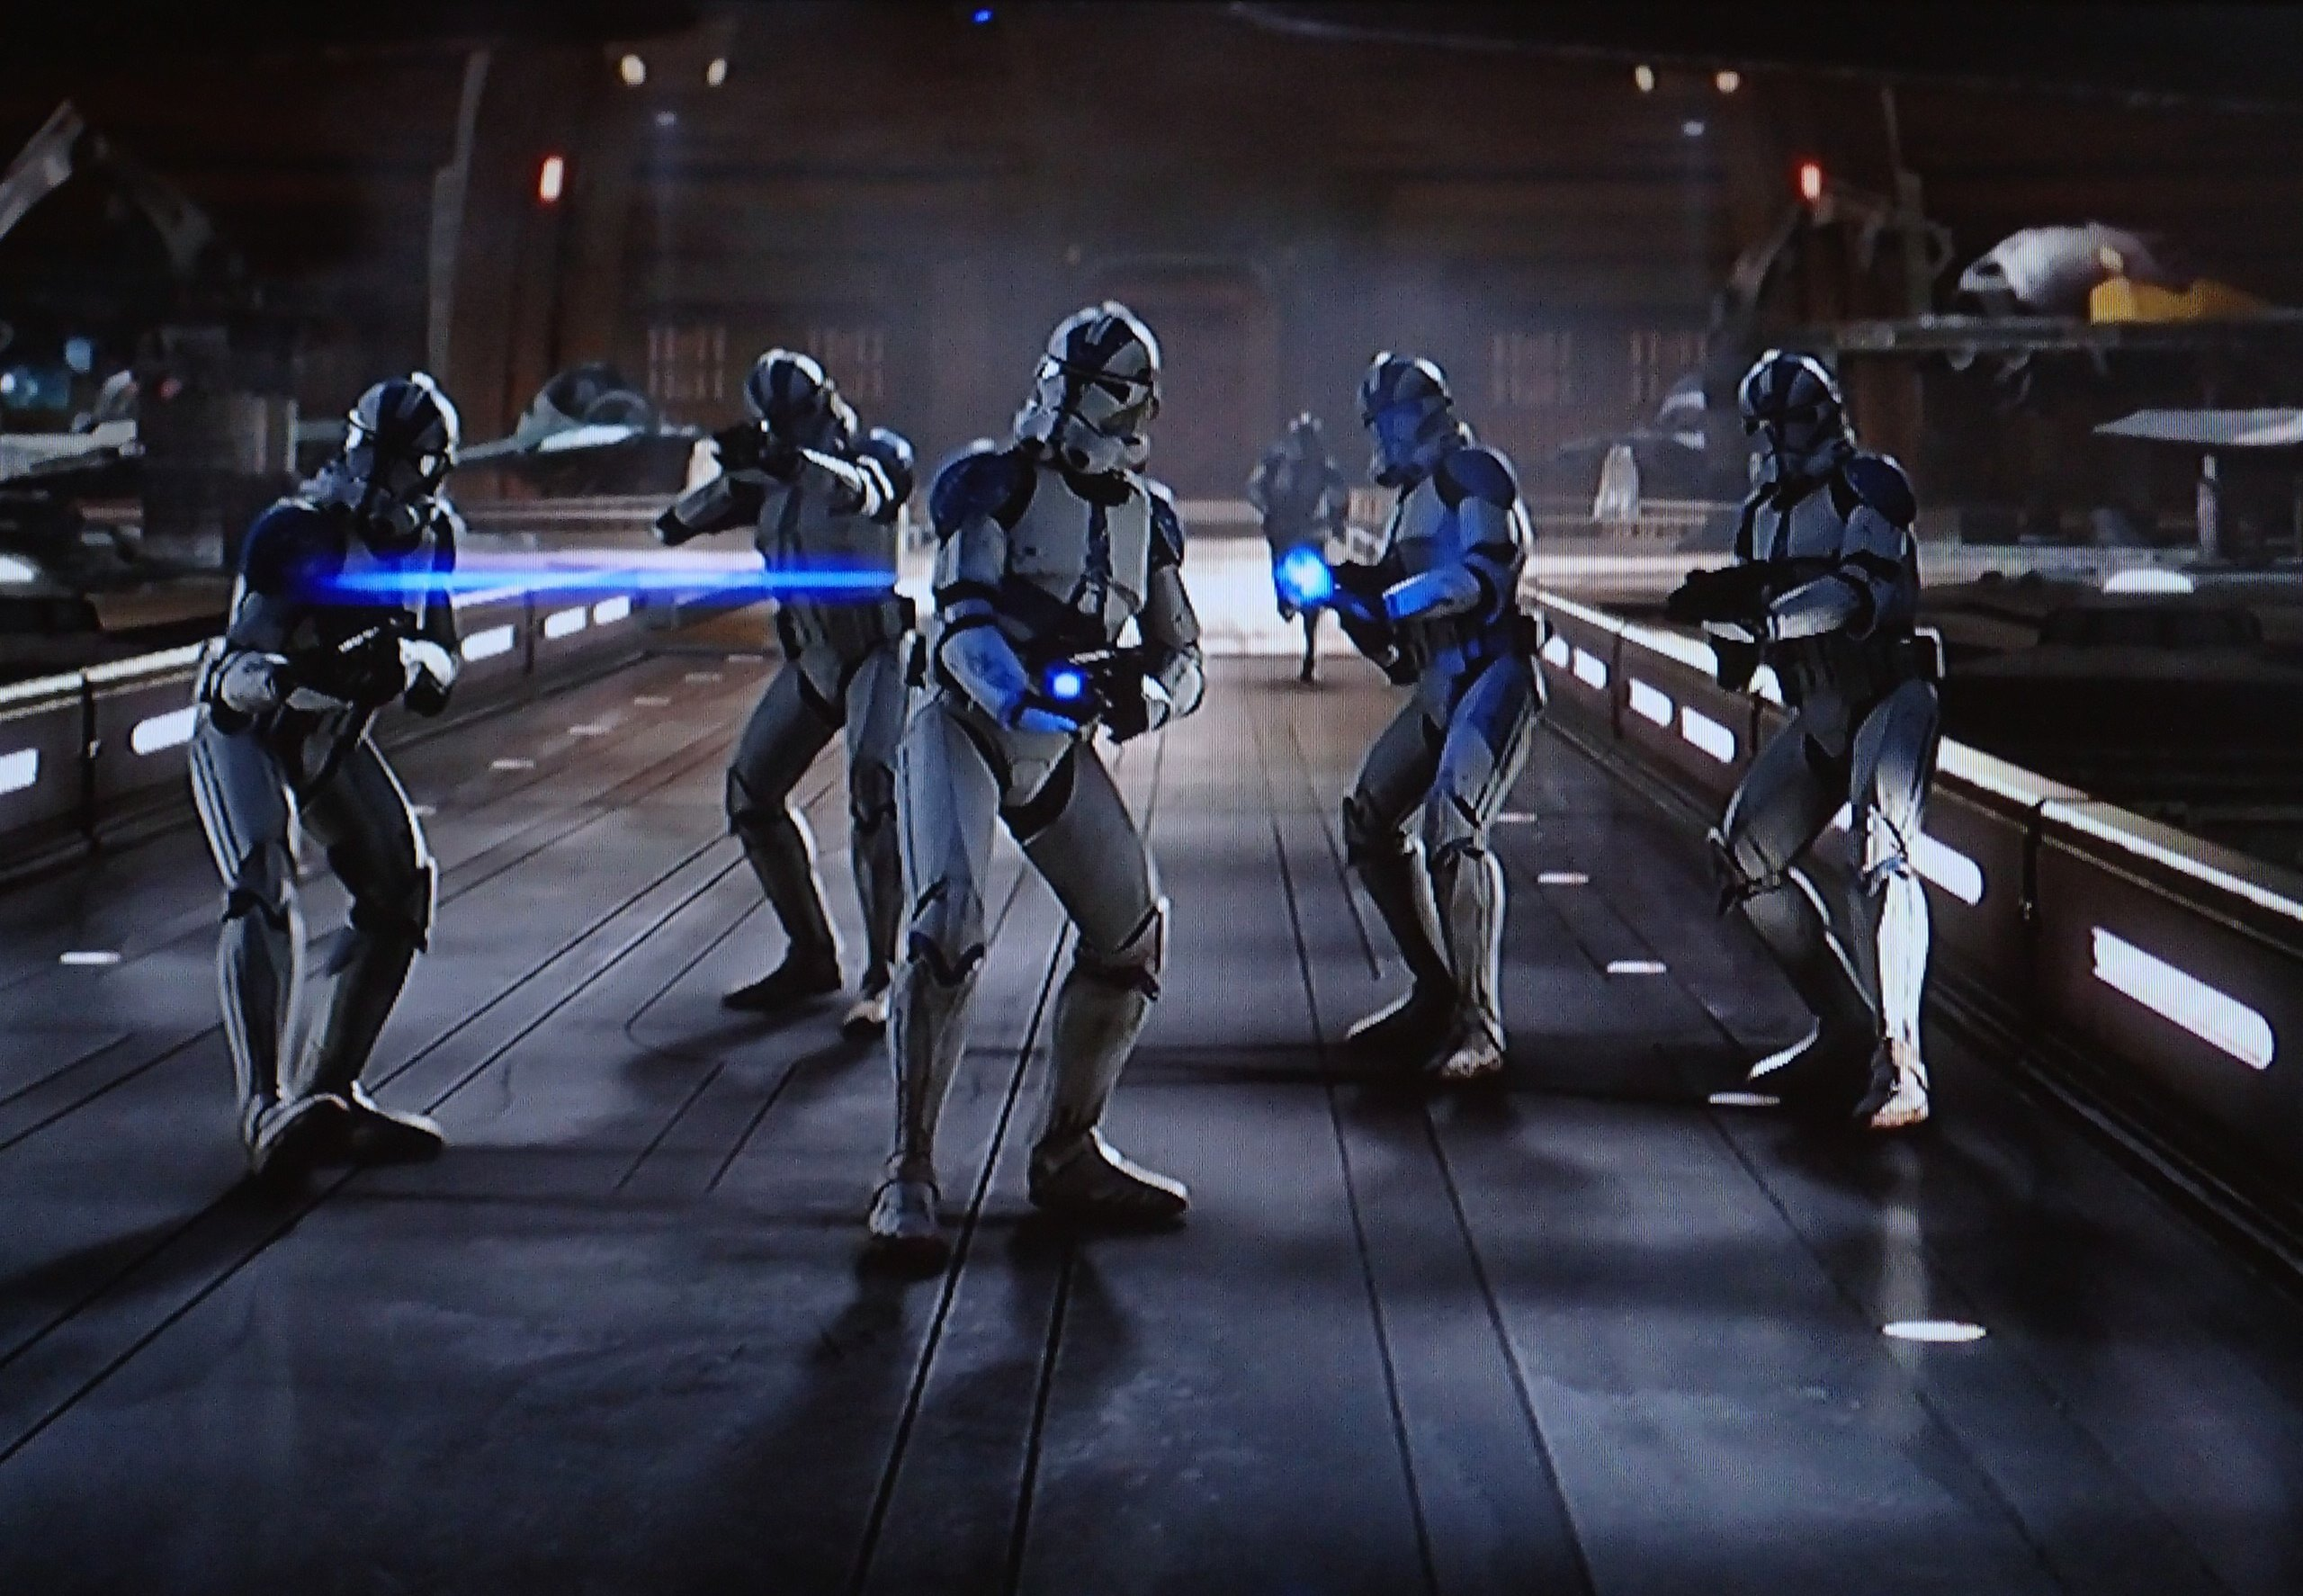 Free Download Star Wars Images Clonetroopers Hd Wallpaper And